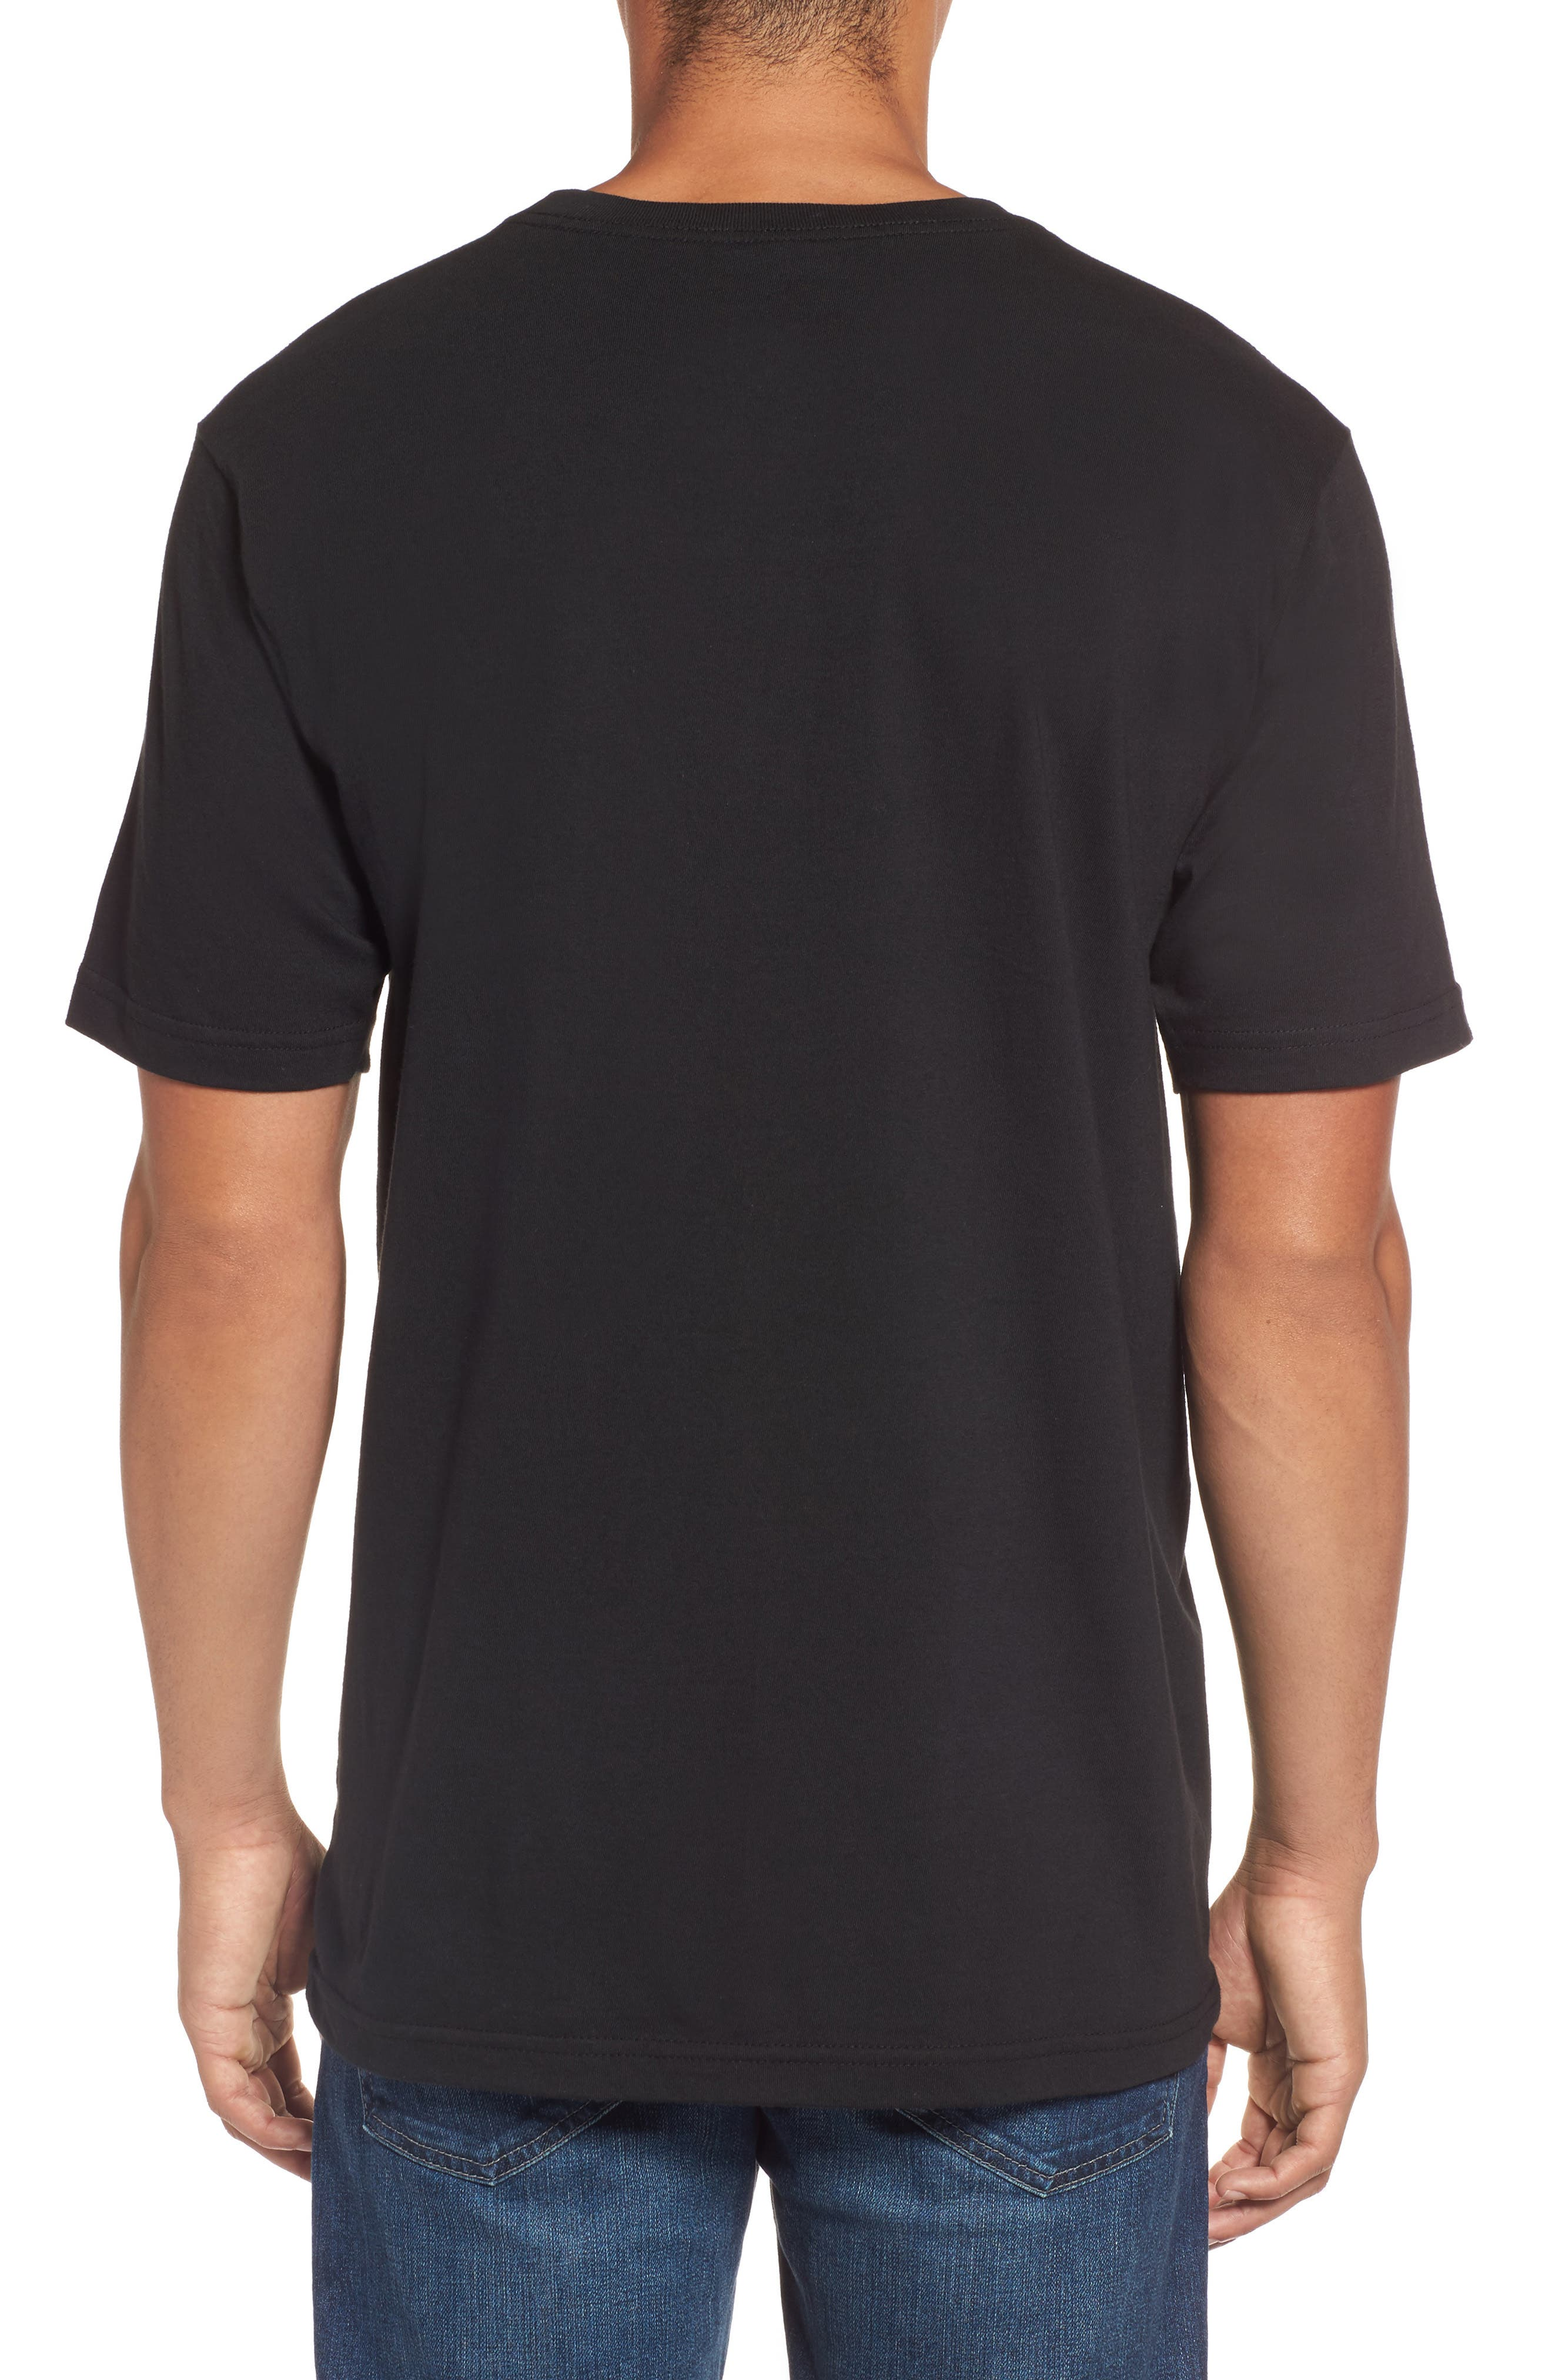 Cage Classic Graphic T-Shirt,                             Alternate thumbnail 2, color,                             001